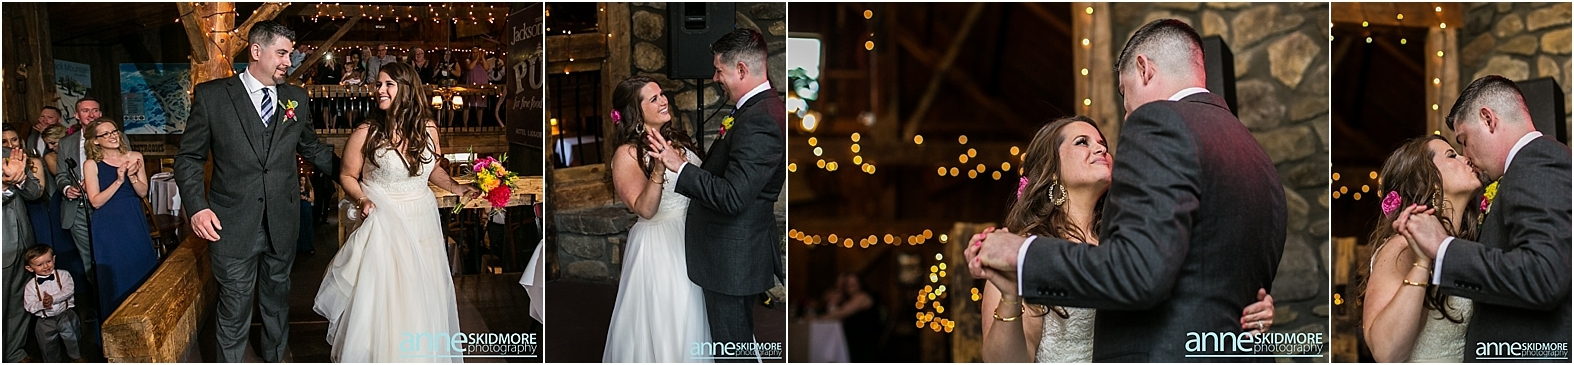 Whitney's_Inn_Wedding_0035